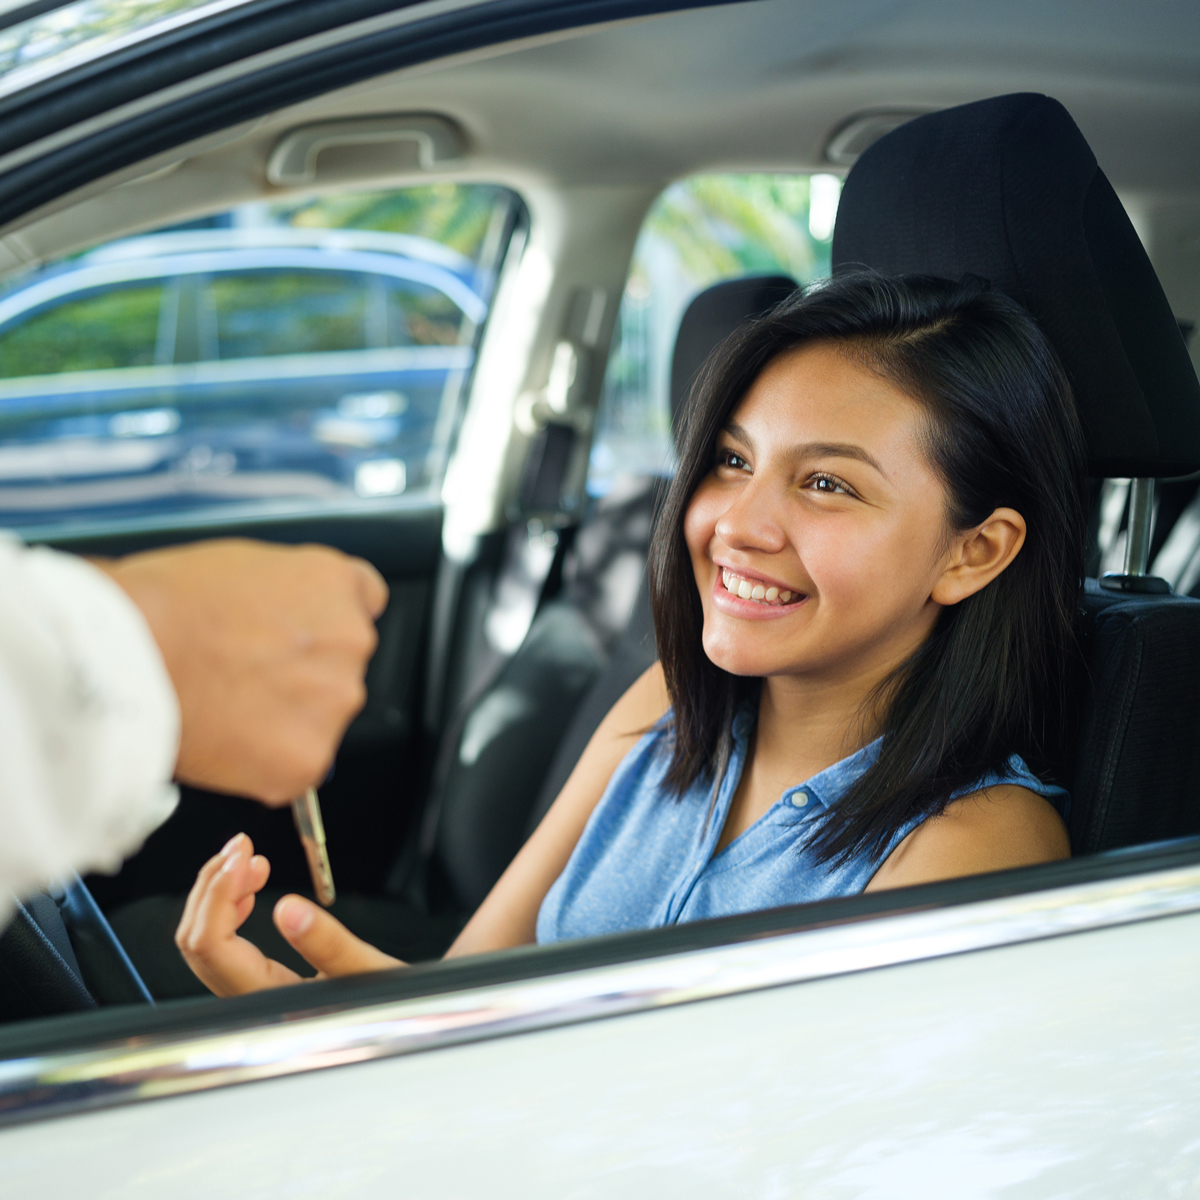 PureCam Protects Teen Drivers